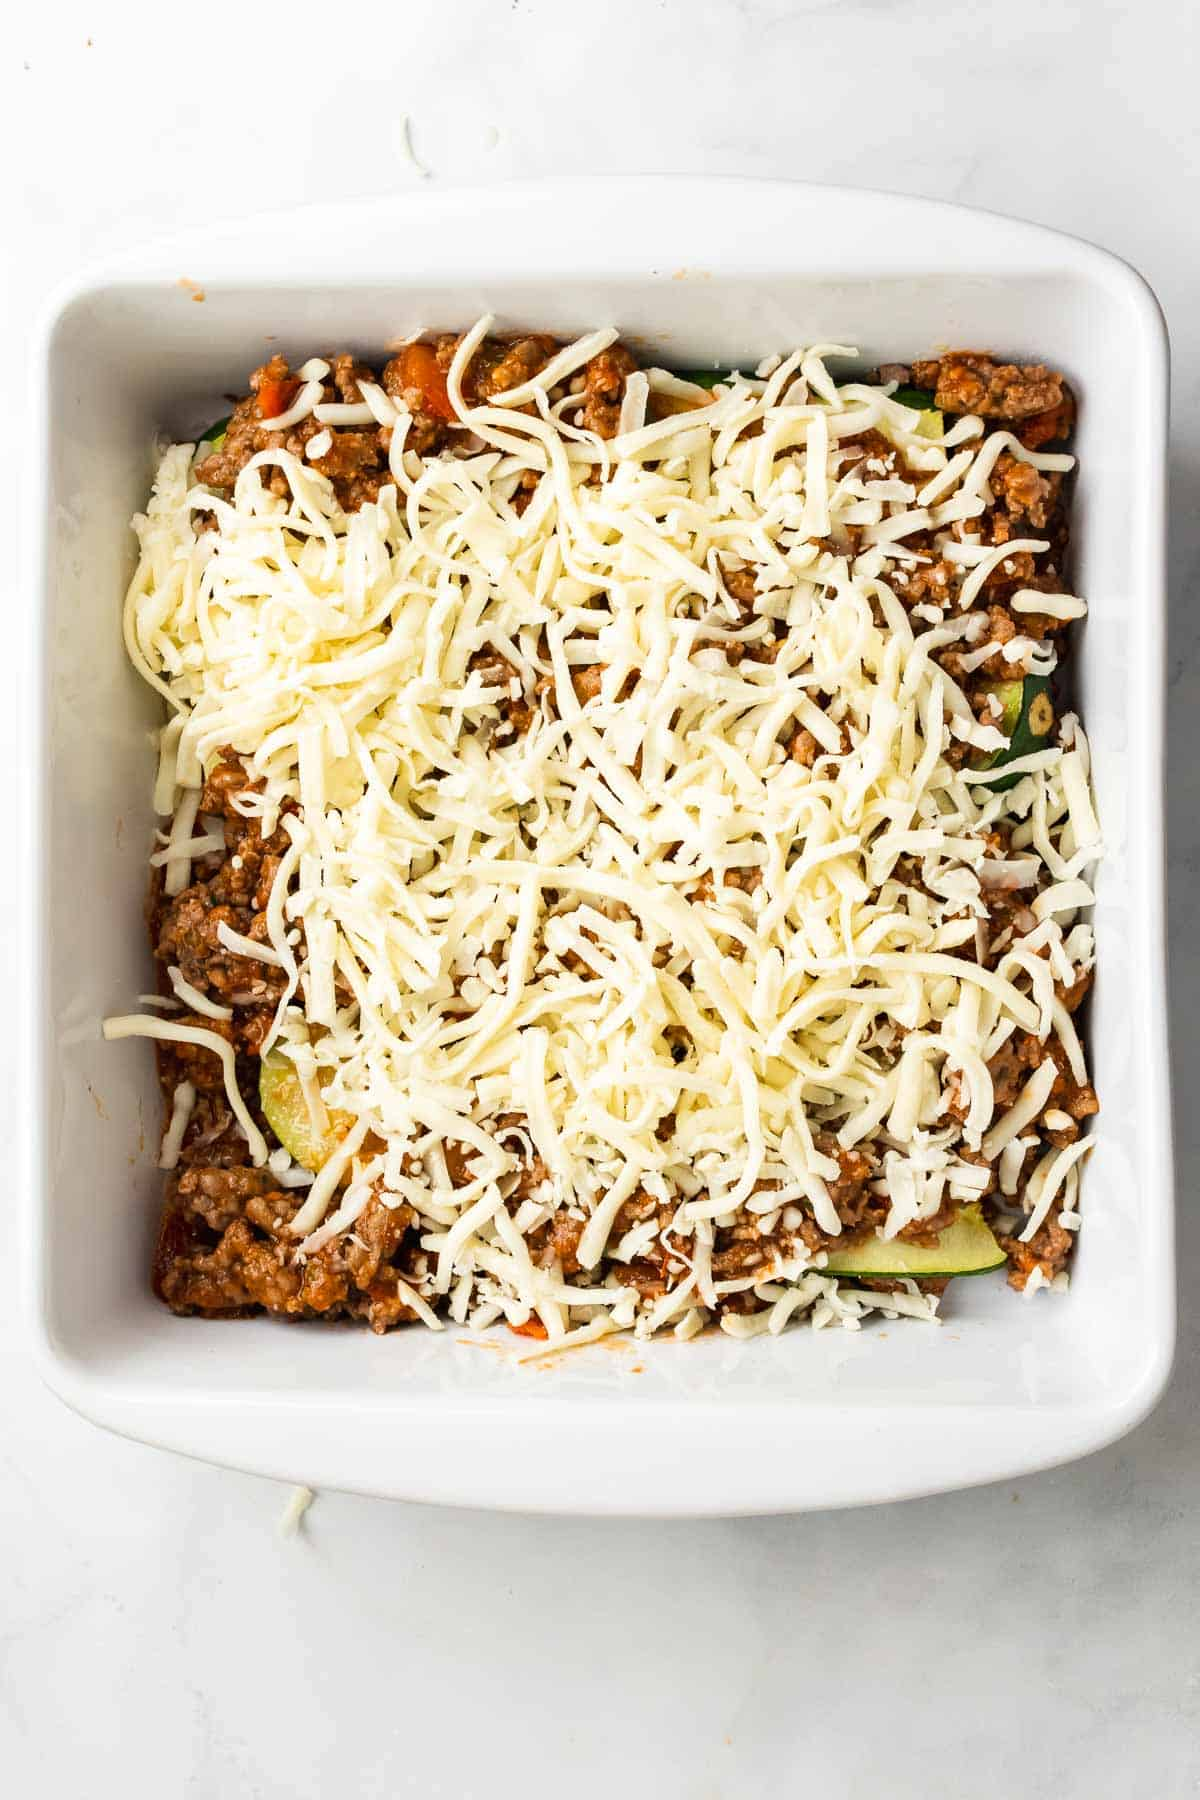 Assembling the lasagna with mozzarella cheese over zucchini slices and the ground beef sauce in a baking pan, as seen from above